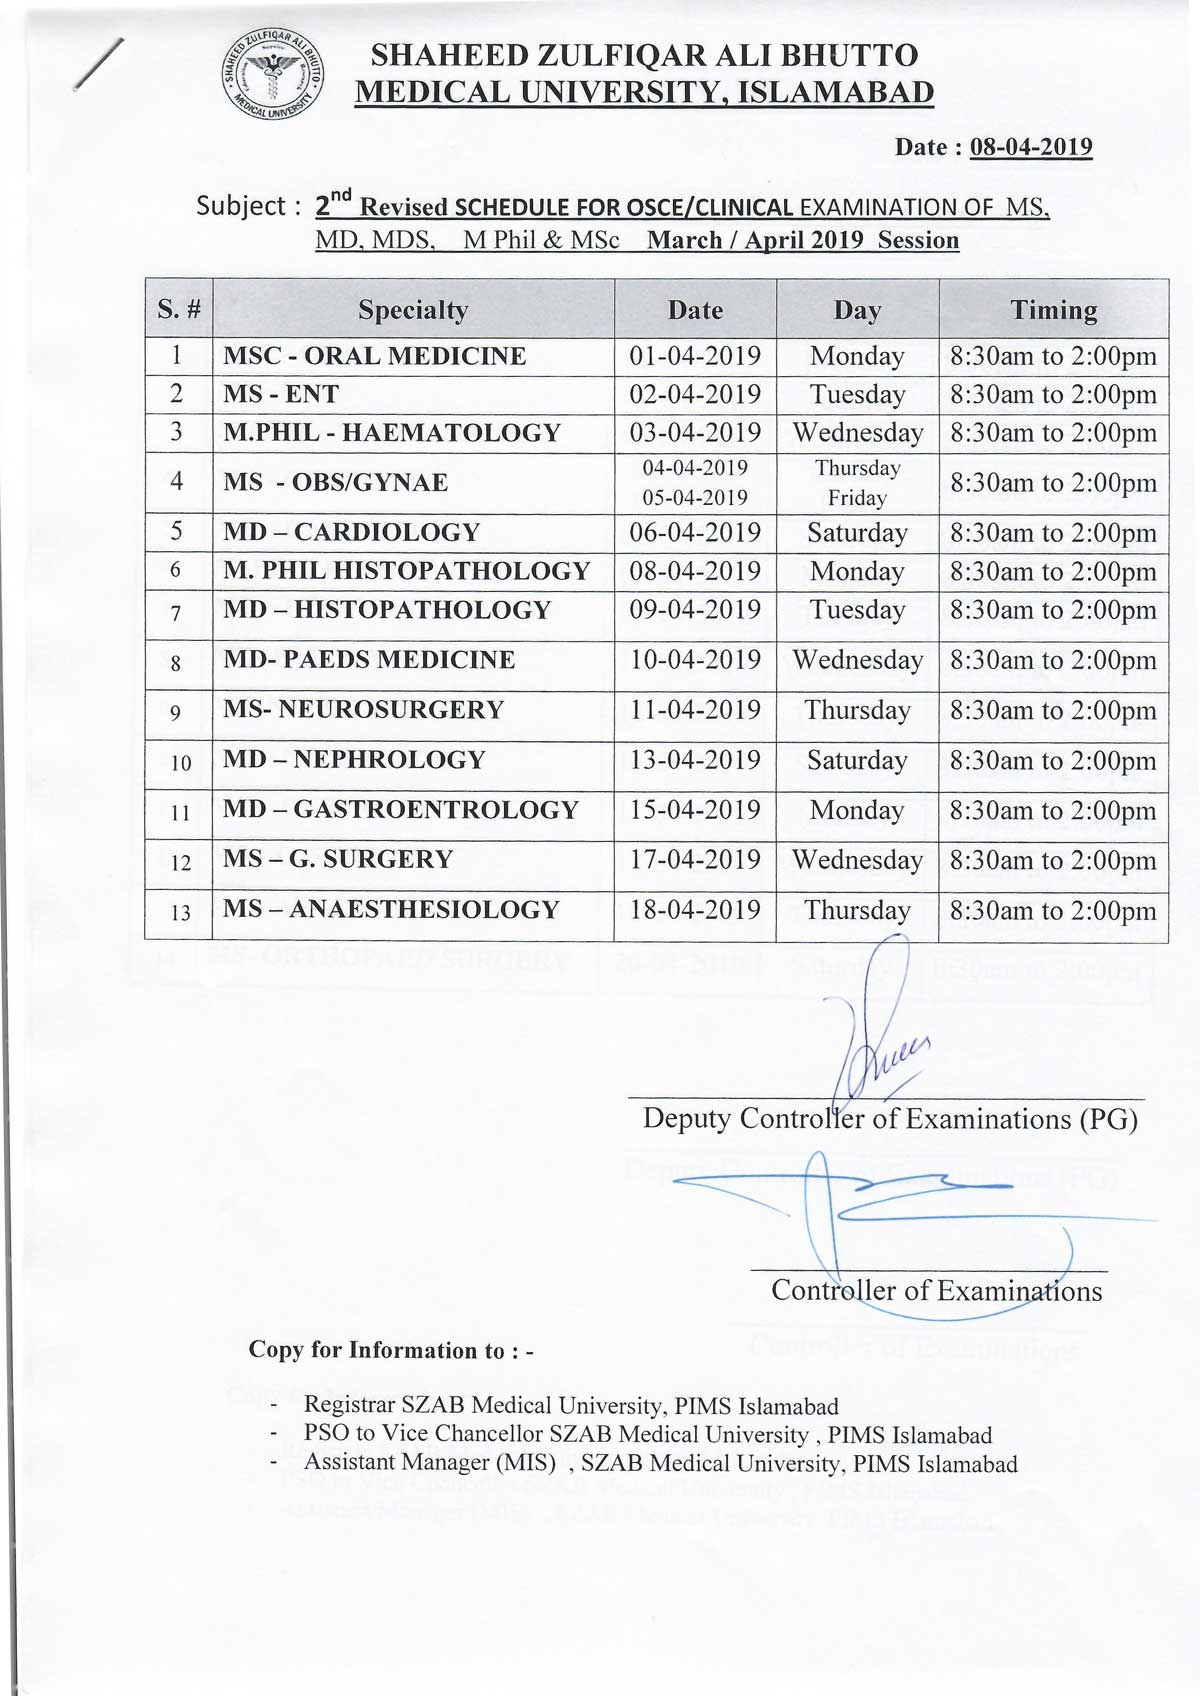 Revised Schedule of Clinical Examination of MS/MD/MDS/M.Phil/MSc